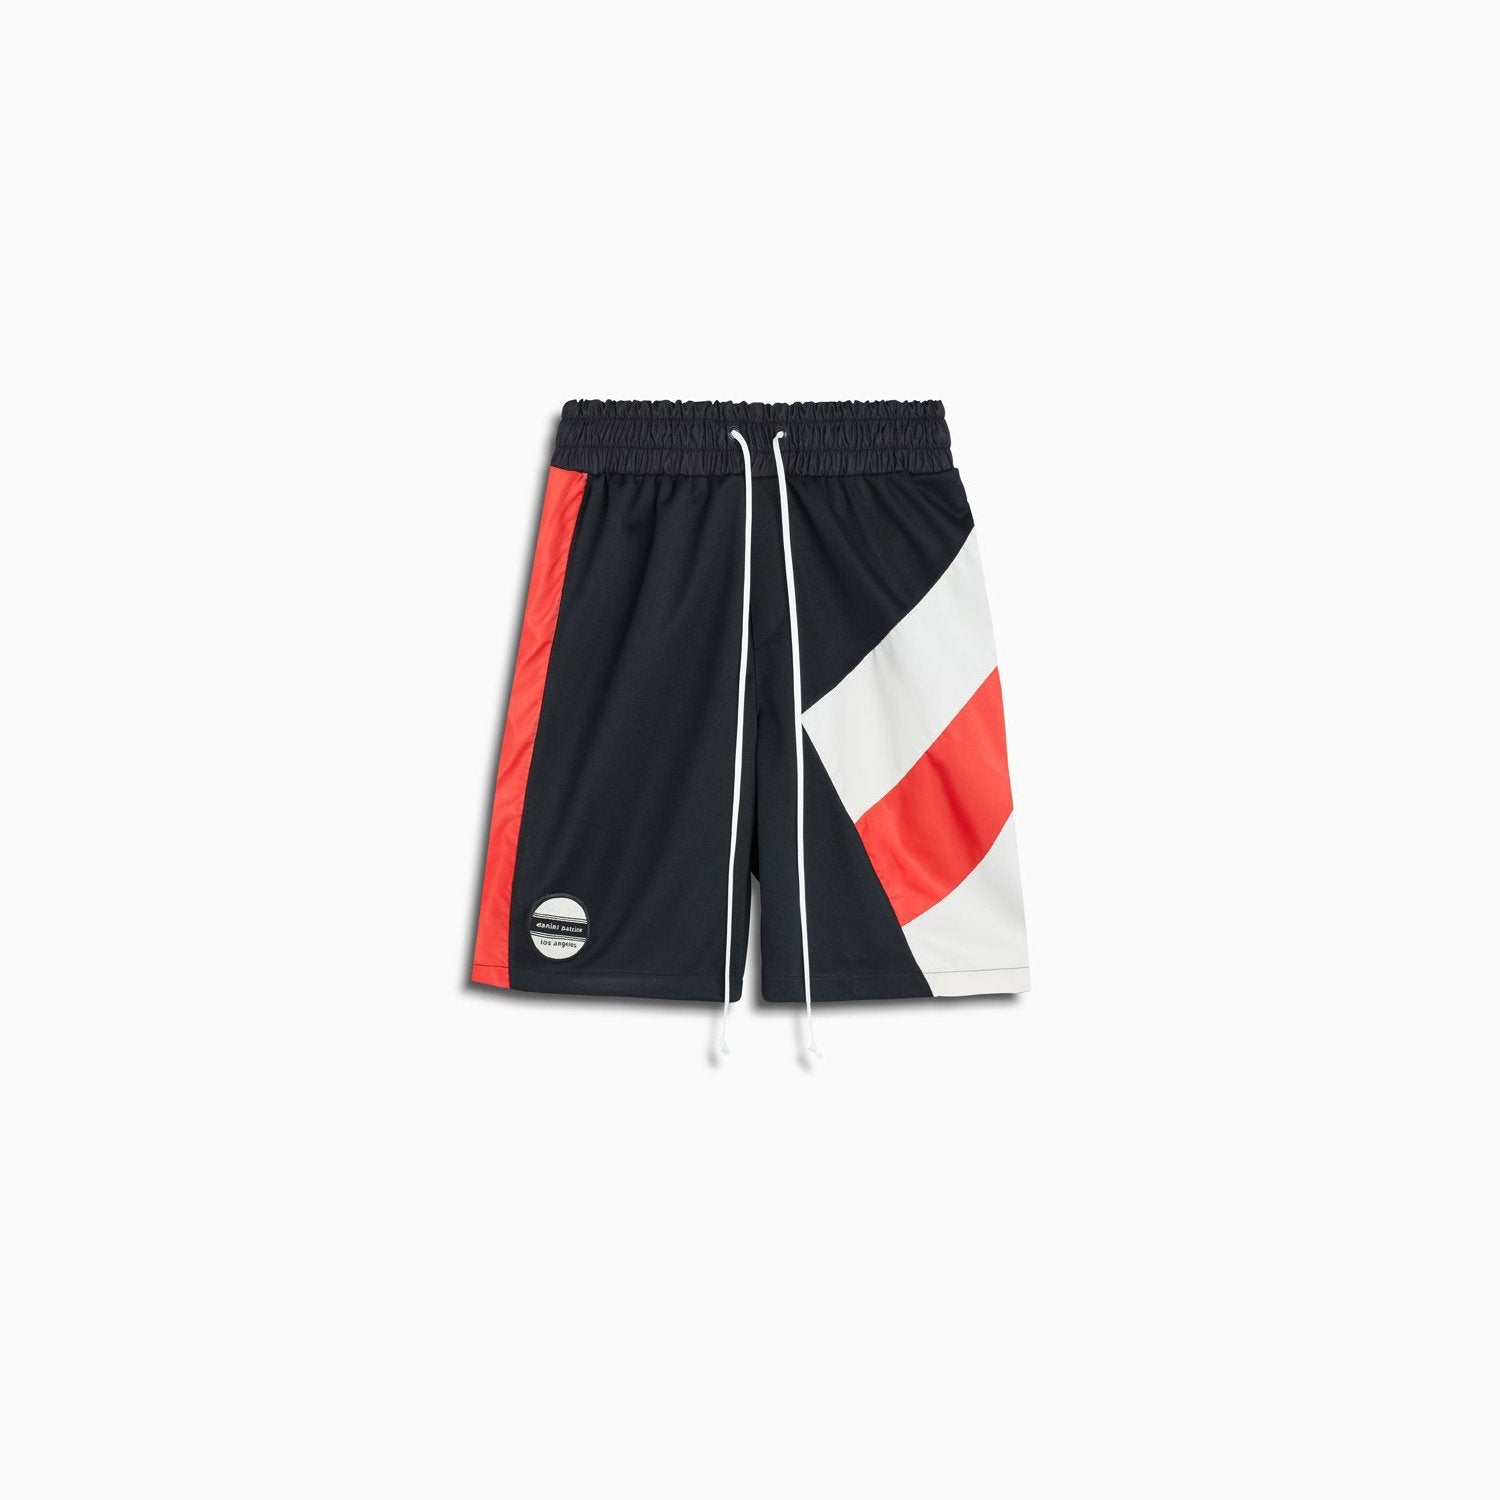 LA shorts / black + red + ivory